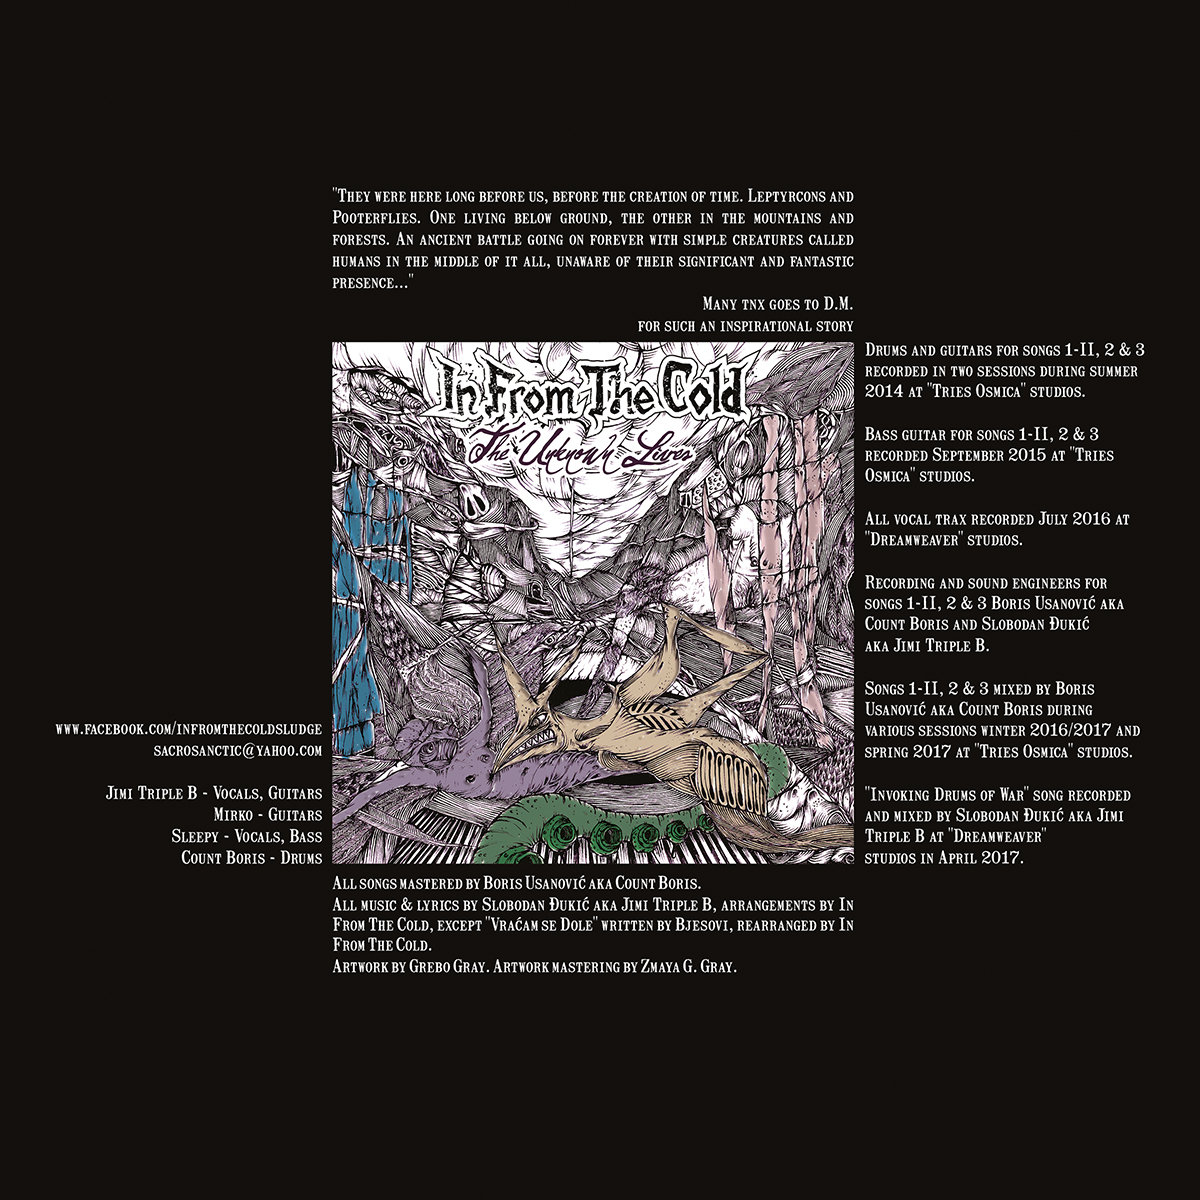 The Unknown Lives - I Invoking Drums of War II Lair of the Leptyrcon